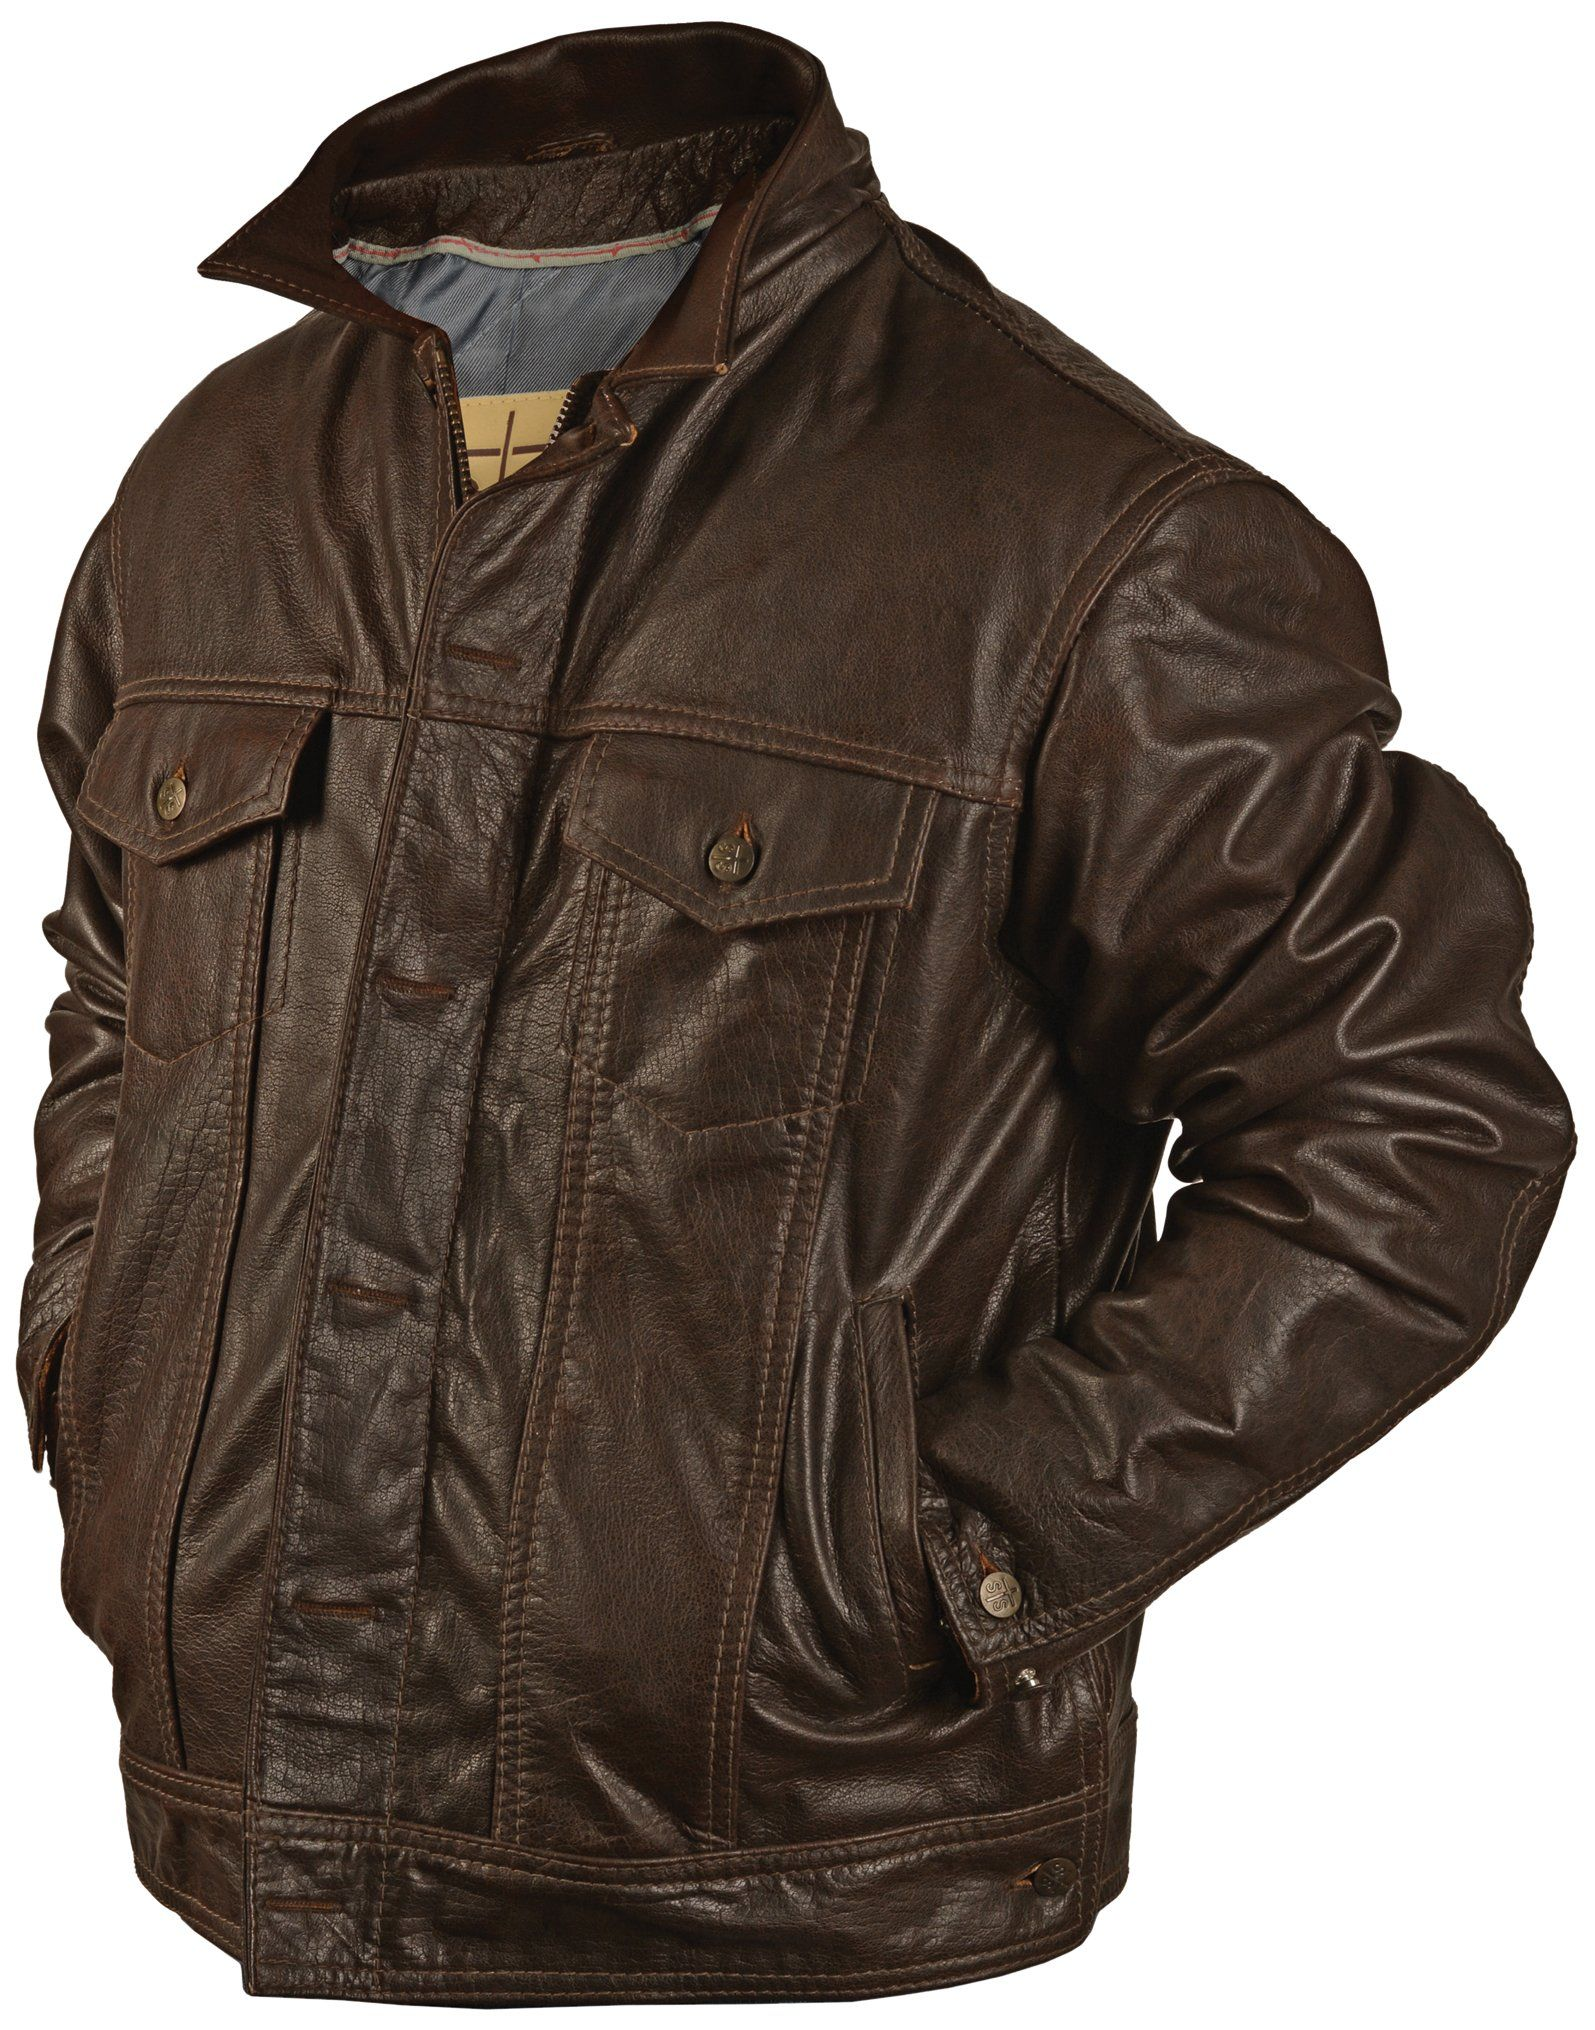 Robot Check Leather Jacket Brown Leather Jacket Jackets [ 2030 x 1595 Pixel ]